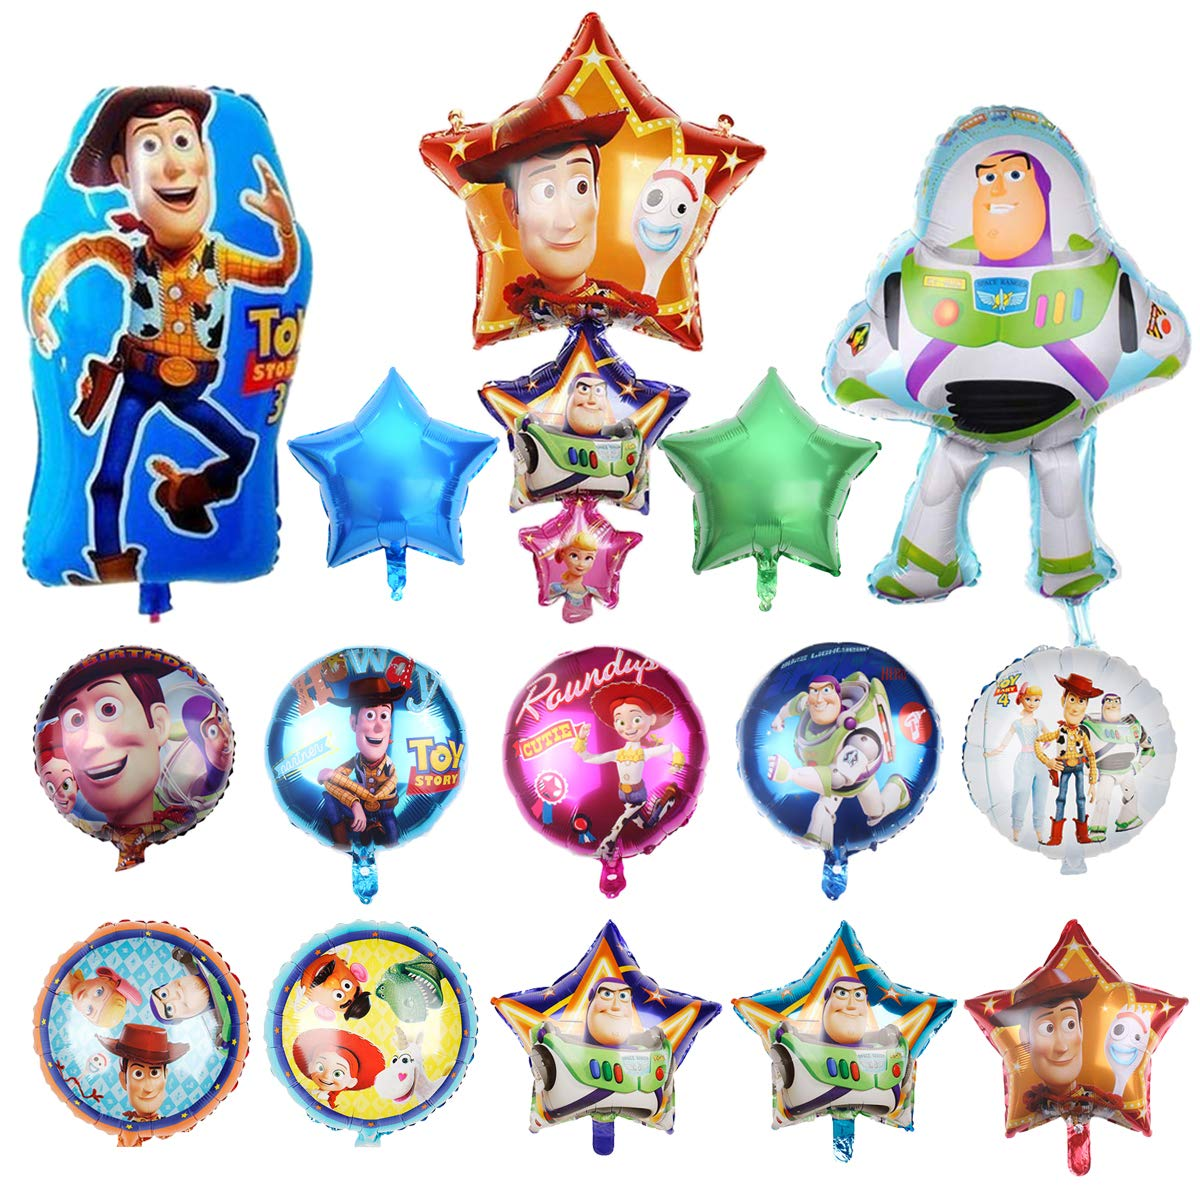 15 Pcs Toy Story Balloons, Woody and Buzz Lightyear Birthday Party Supplies for Kids Baby Shower Party Decorations